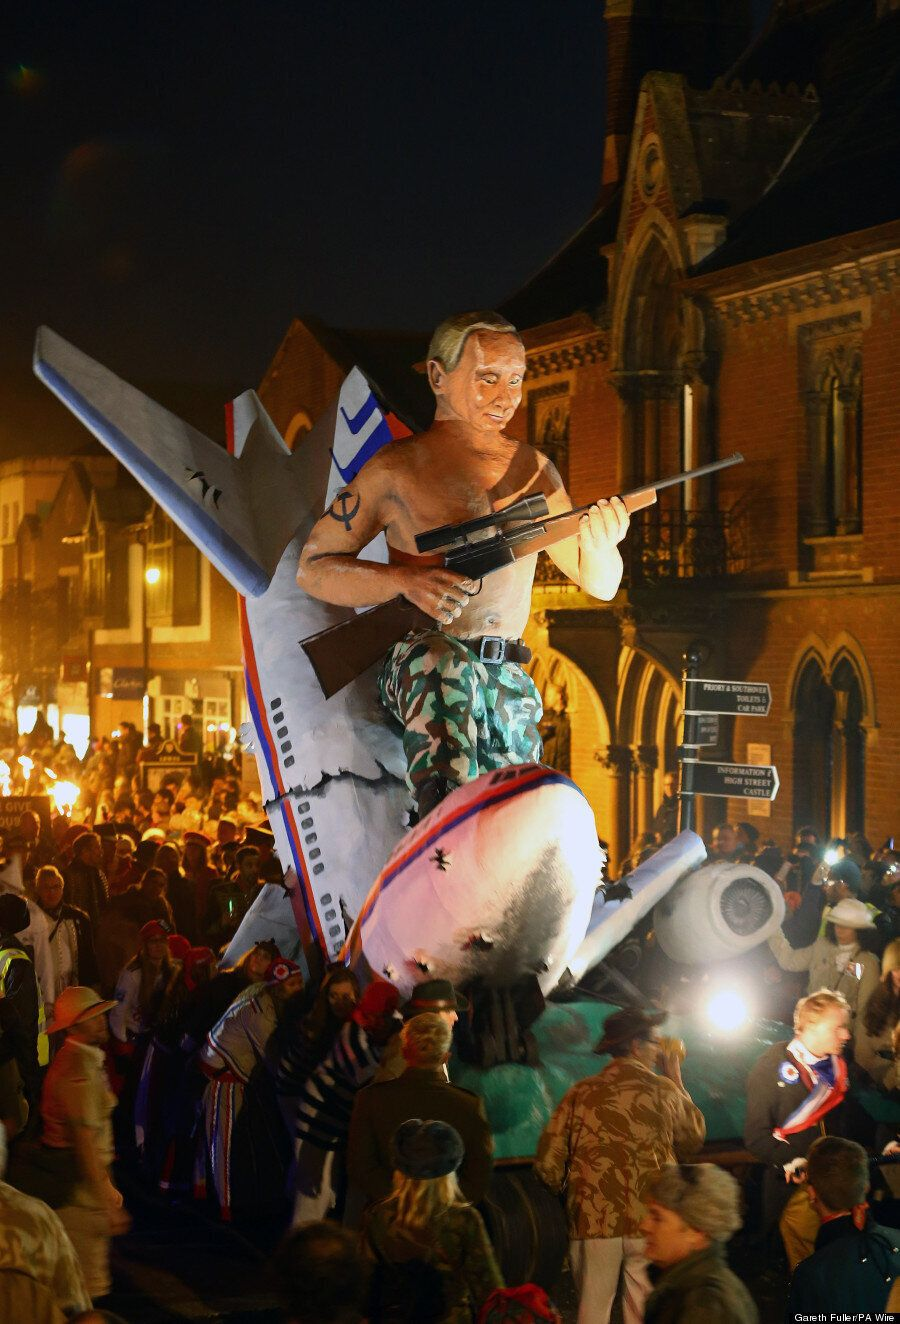 Lewes Bonfire Night Burnt Vladimir Putin In A Mankini And Sat Astride